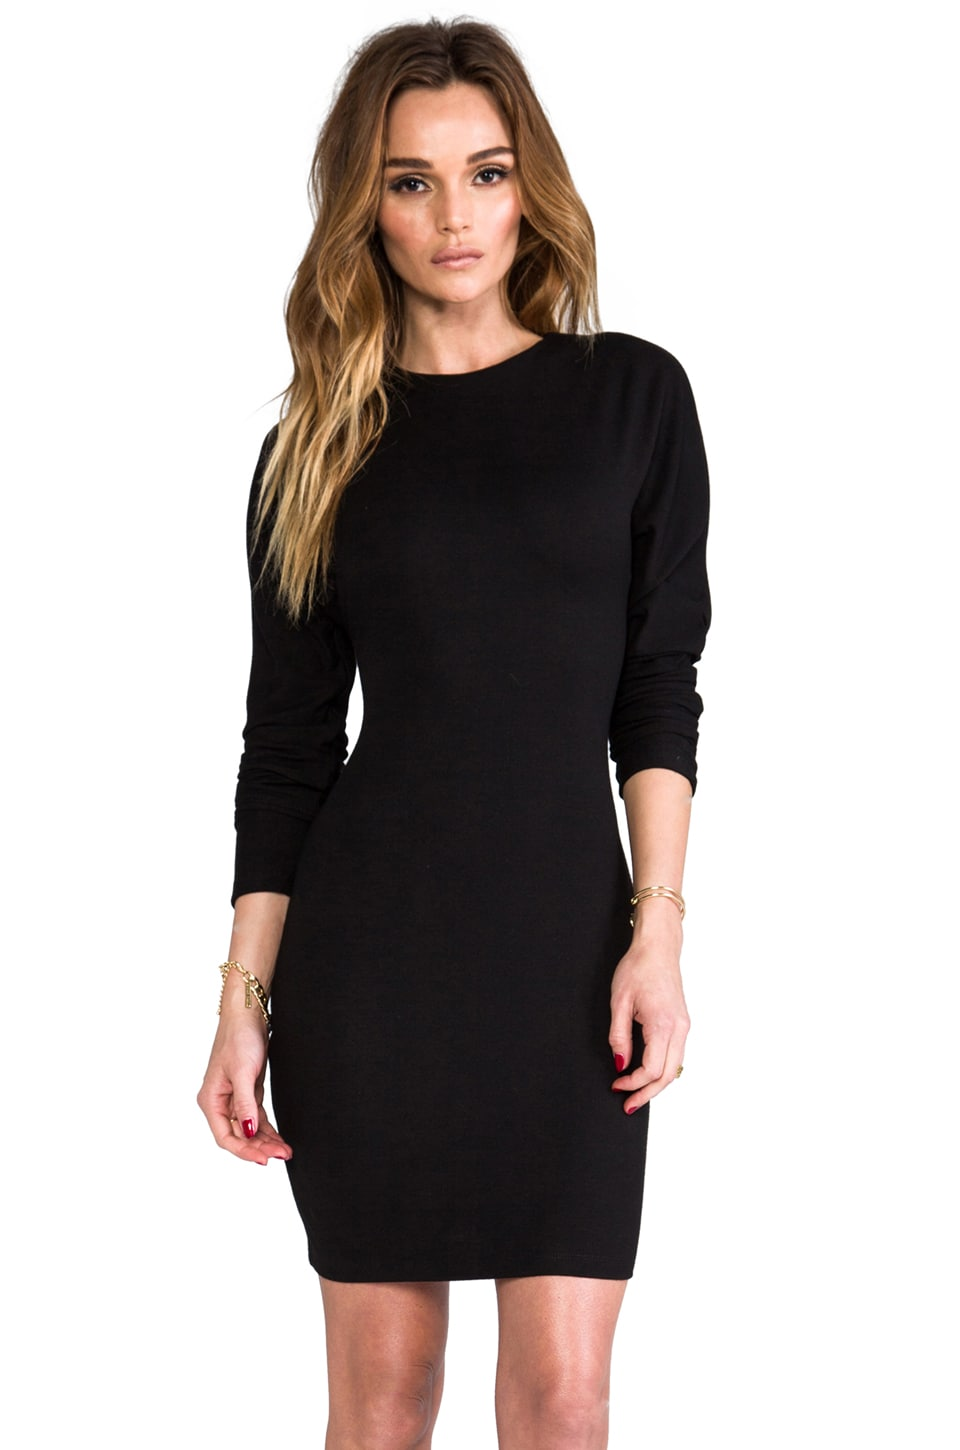 David Lerner The Ludlow Dress in Black